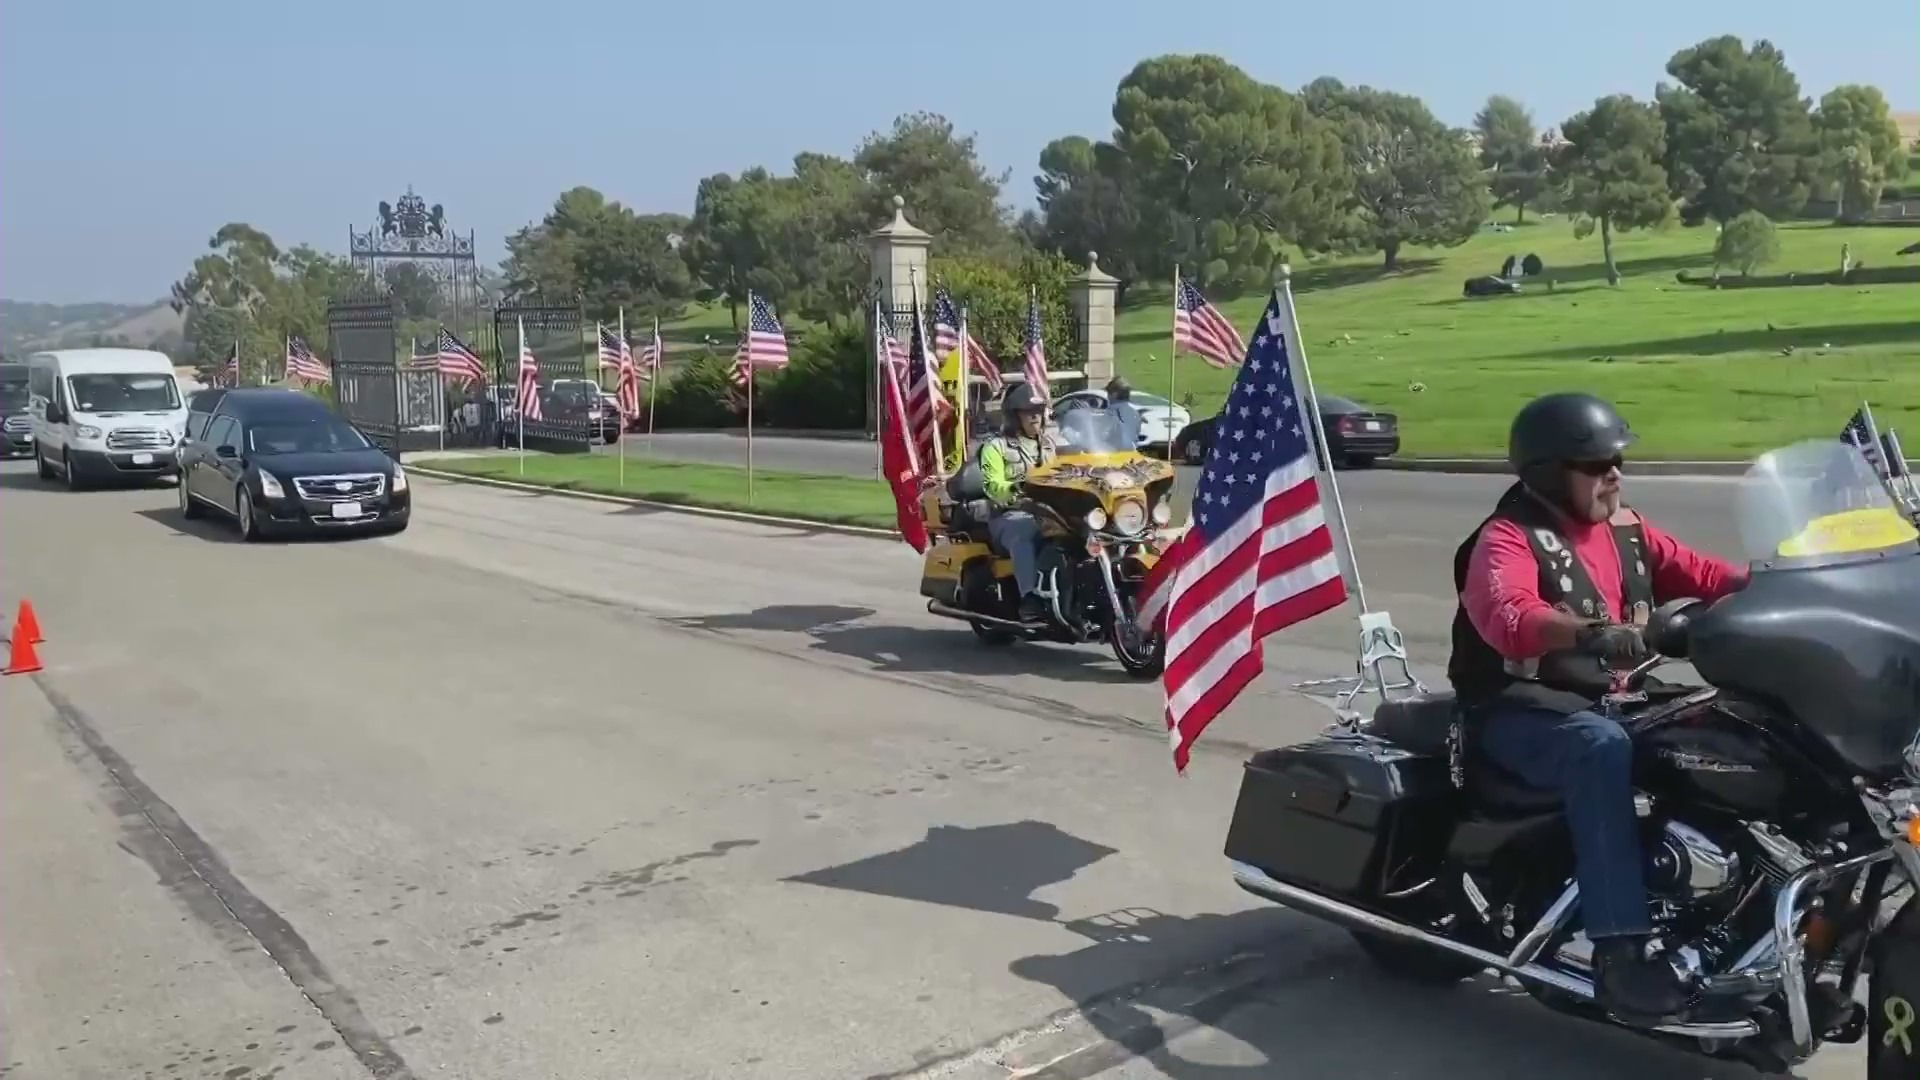 A procession paid tribute to fallen Marine Lance Cpl. Dylan Merola on Sept. 26, 2021. (KTLA)